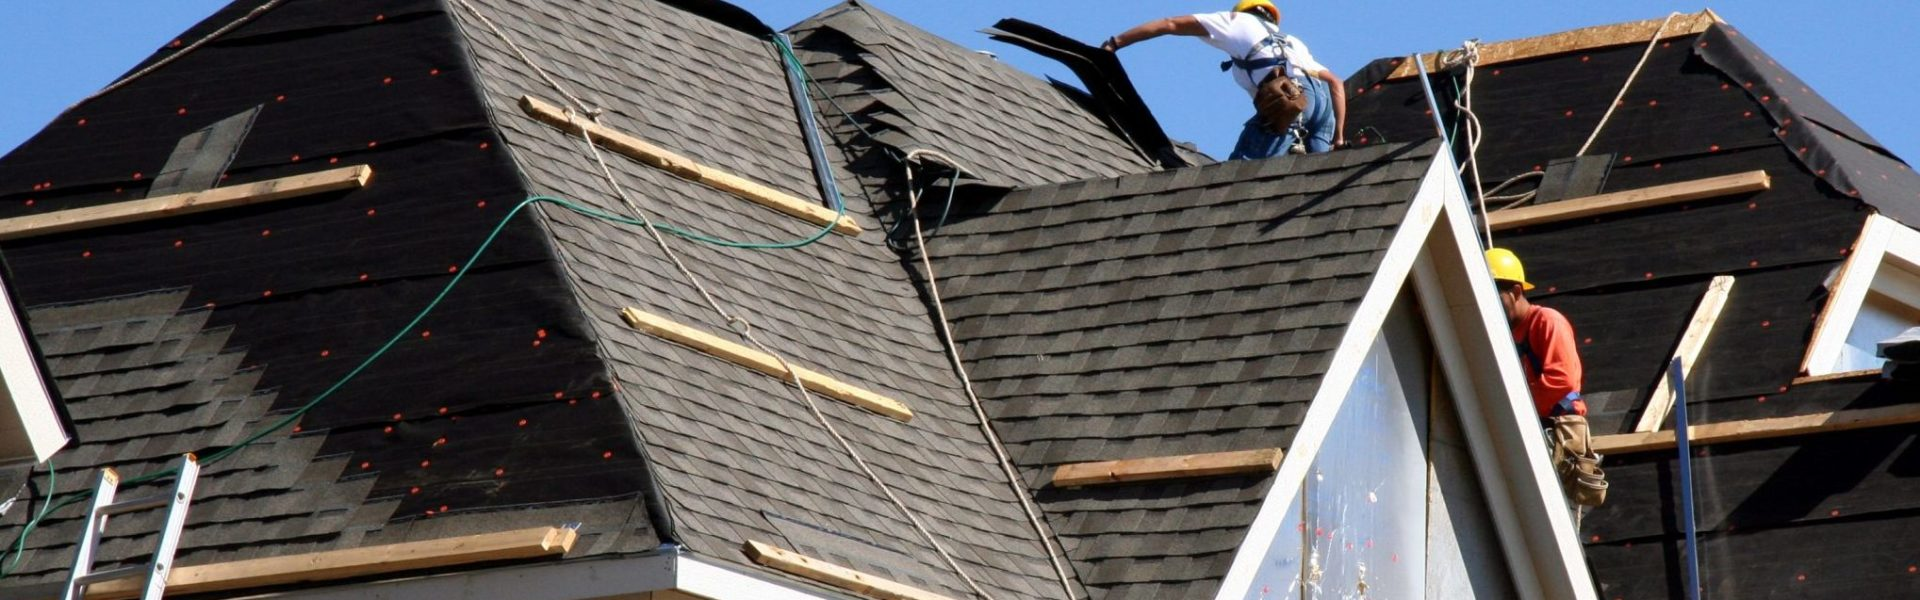 Image result for residential roofing